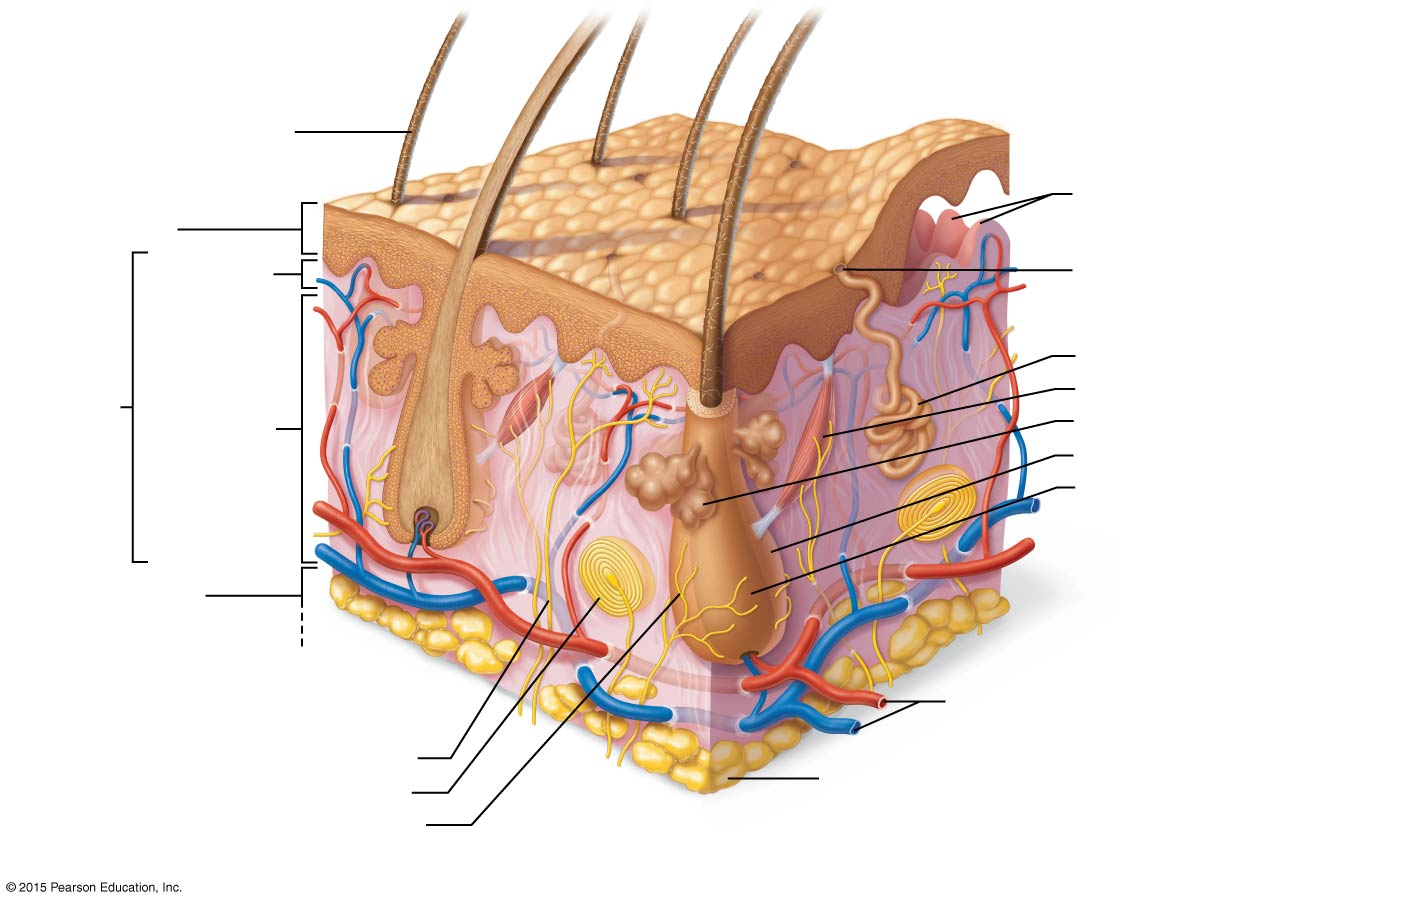 skin layers diagram labeled simple jeep jk radio wiring unlabled of great installation unlabeled diagrams scematic rh 87 jessicadonath de 5